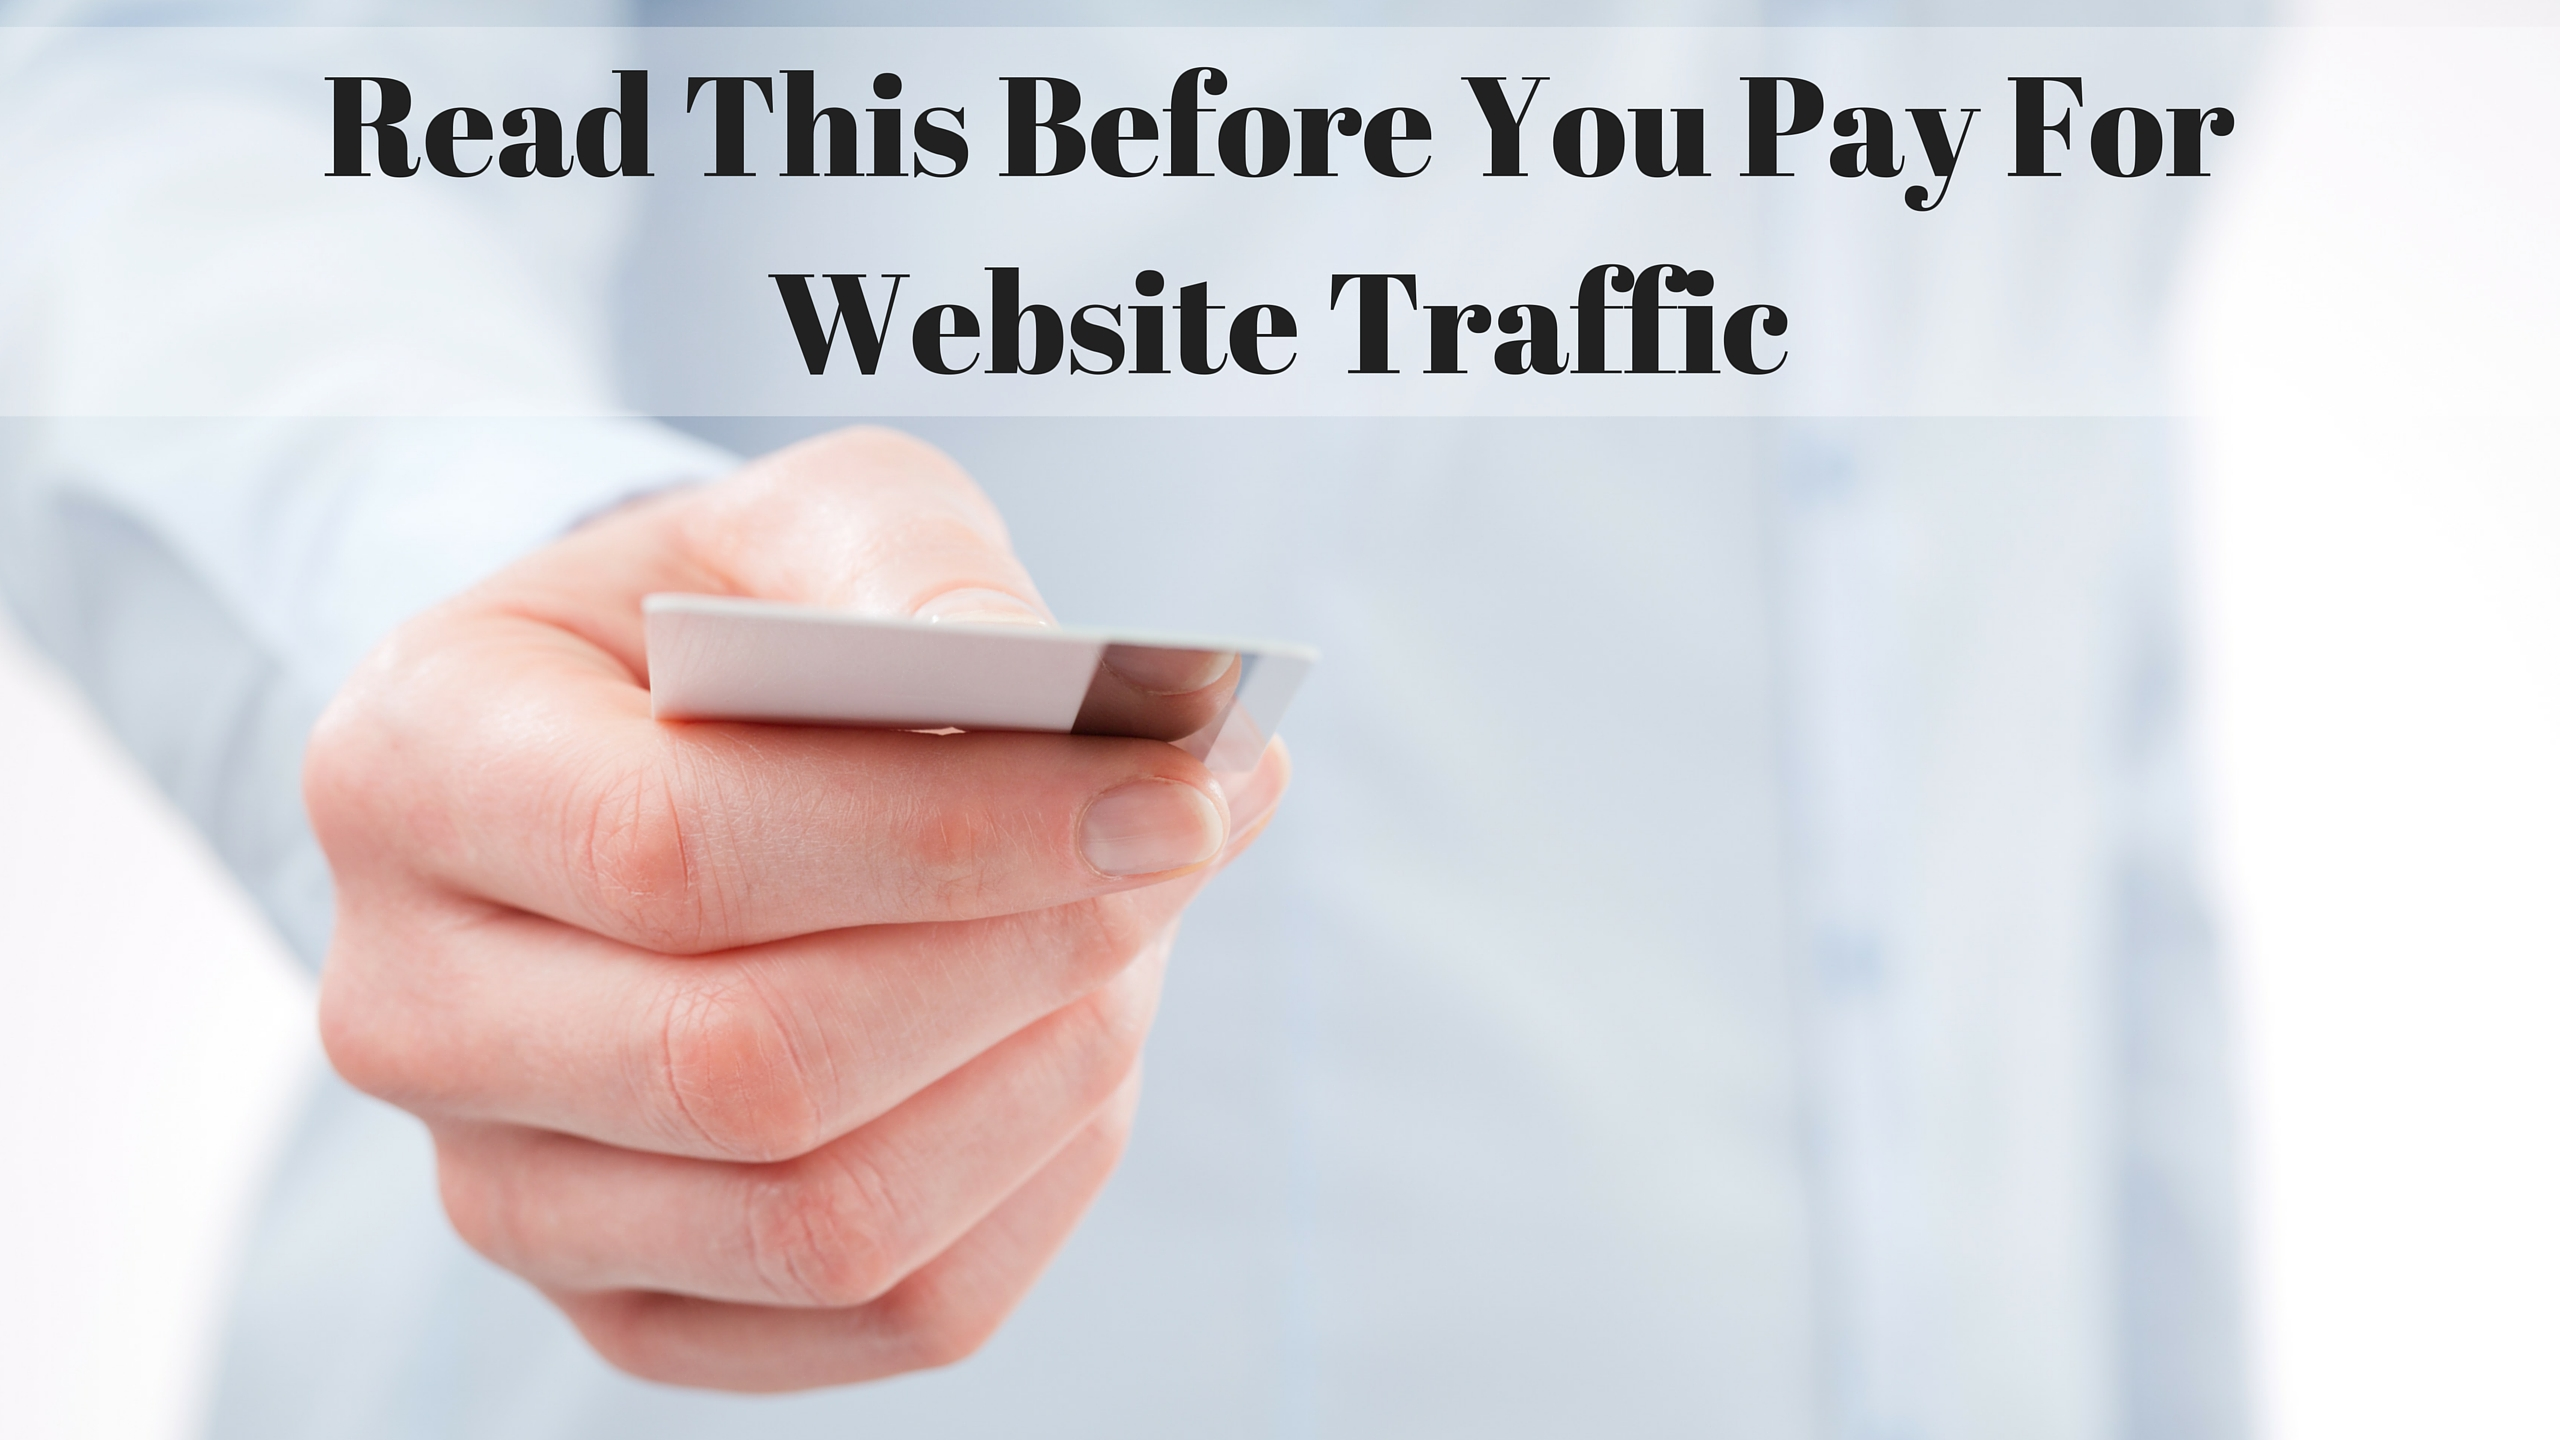 Read This Before You Pay For Website Traffic